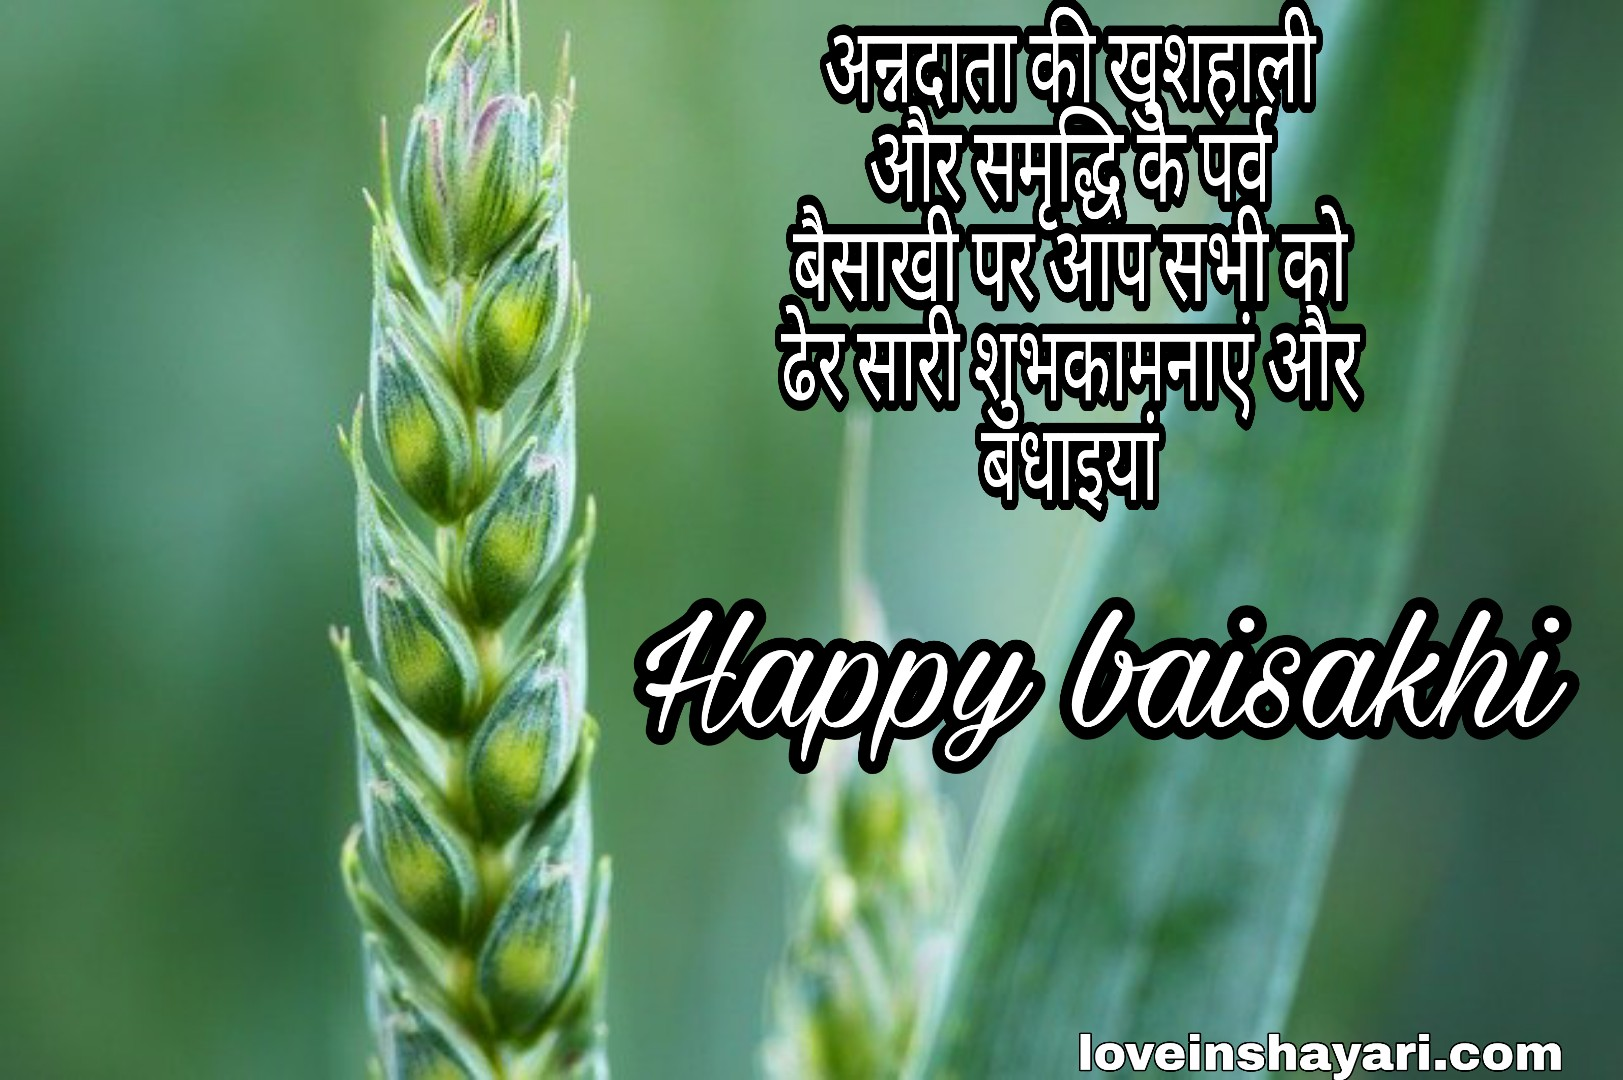 Photo of Baisakhi images 2020 hd